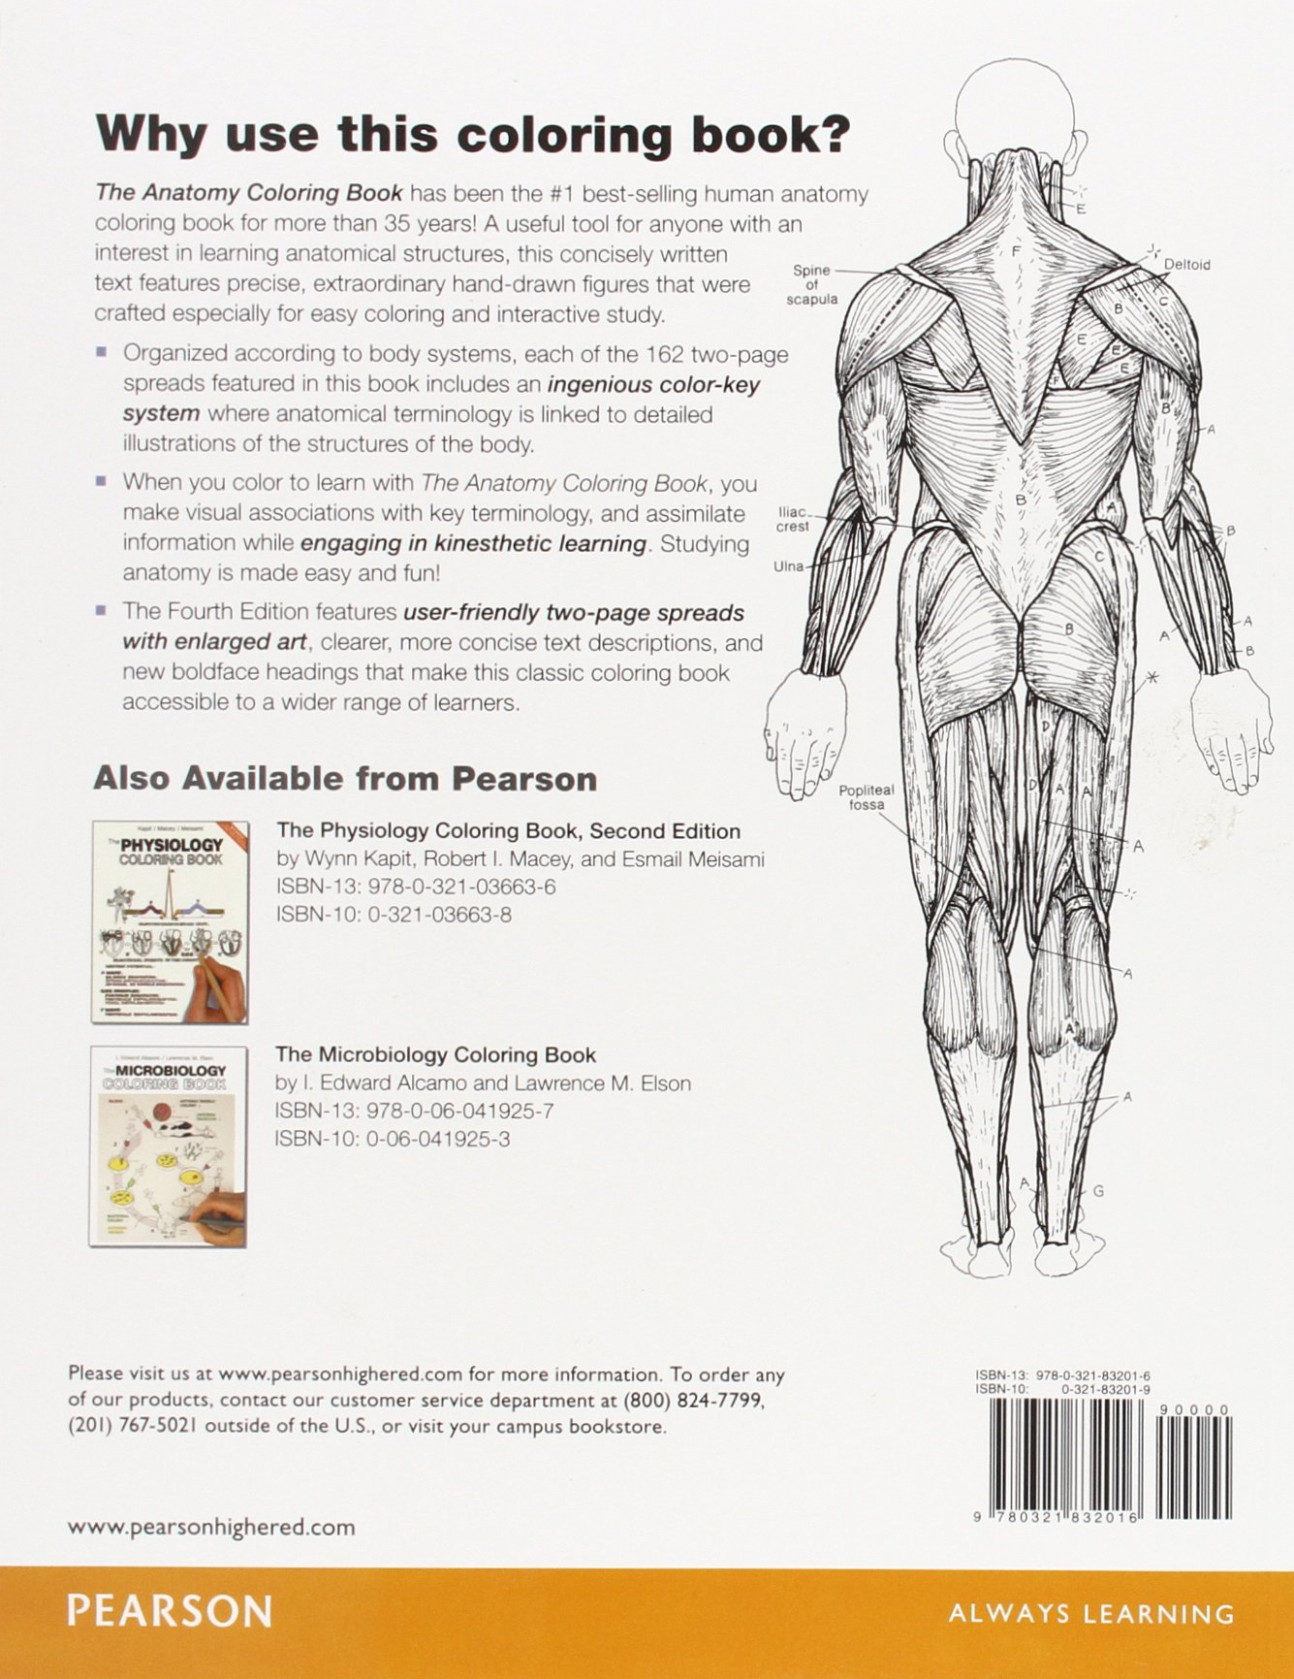 The Anatomy Coloring Book: Amazon.co.uk: Wynn Kapit, Lawrence M ...